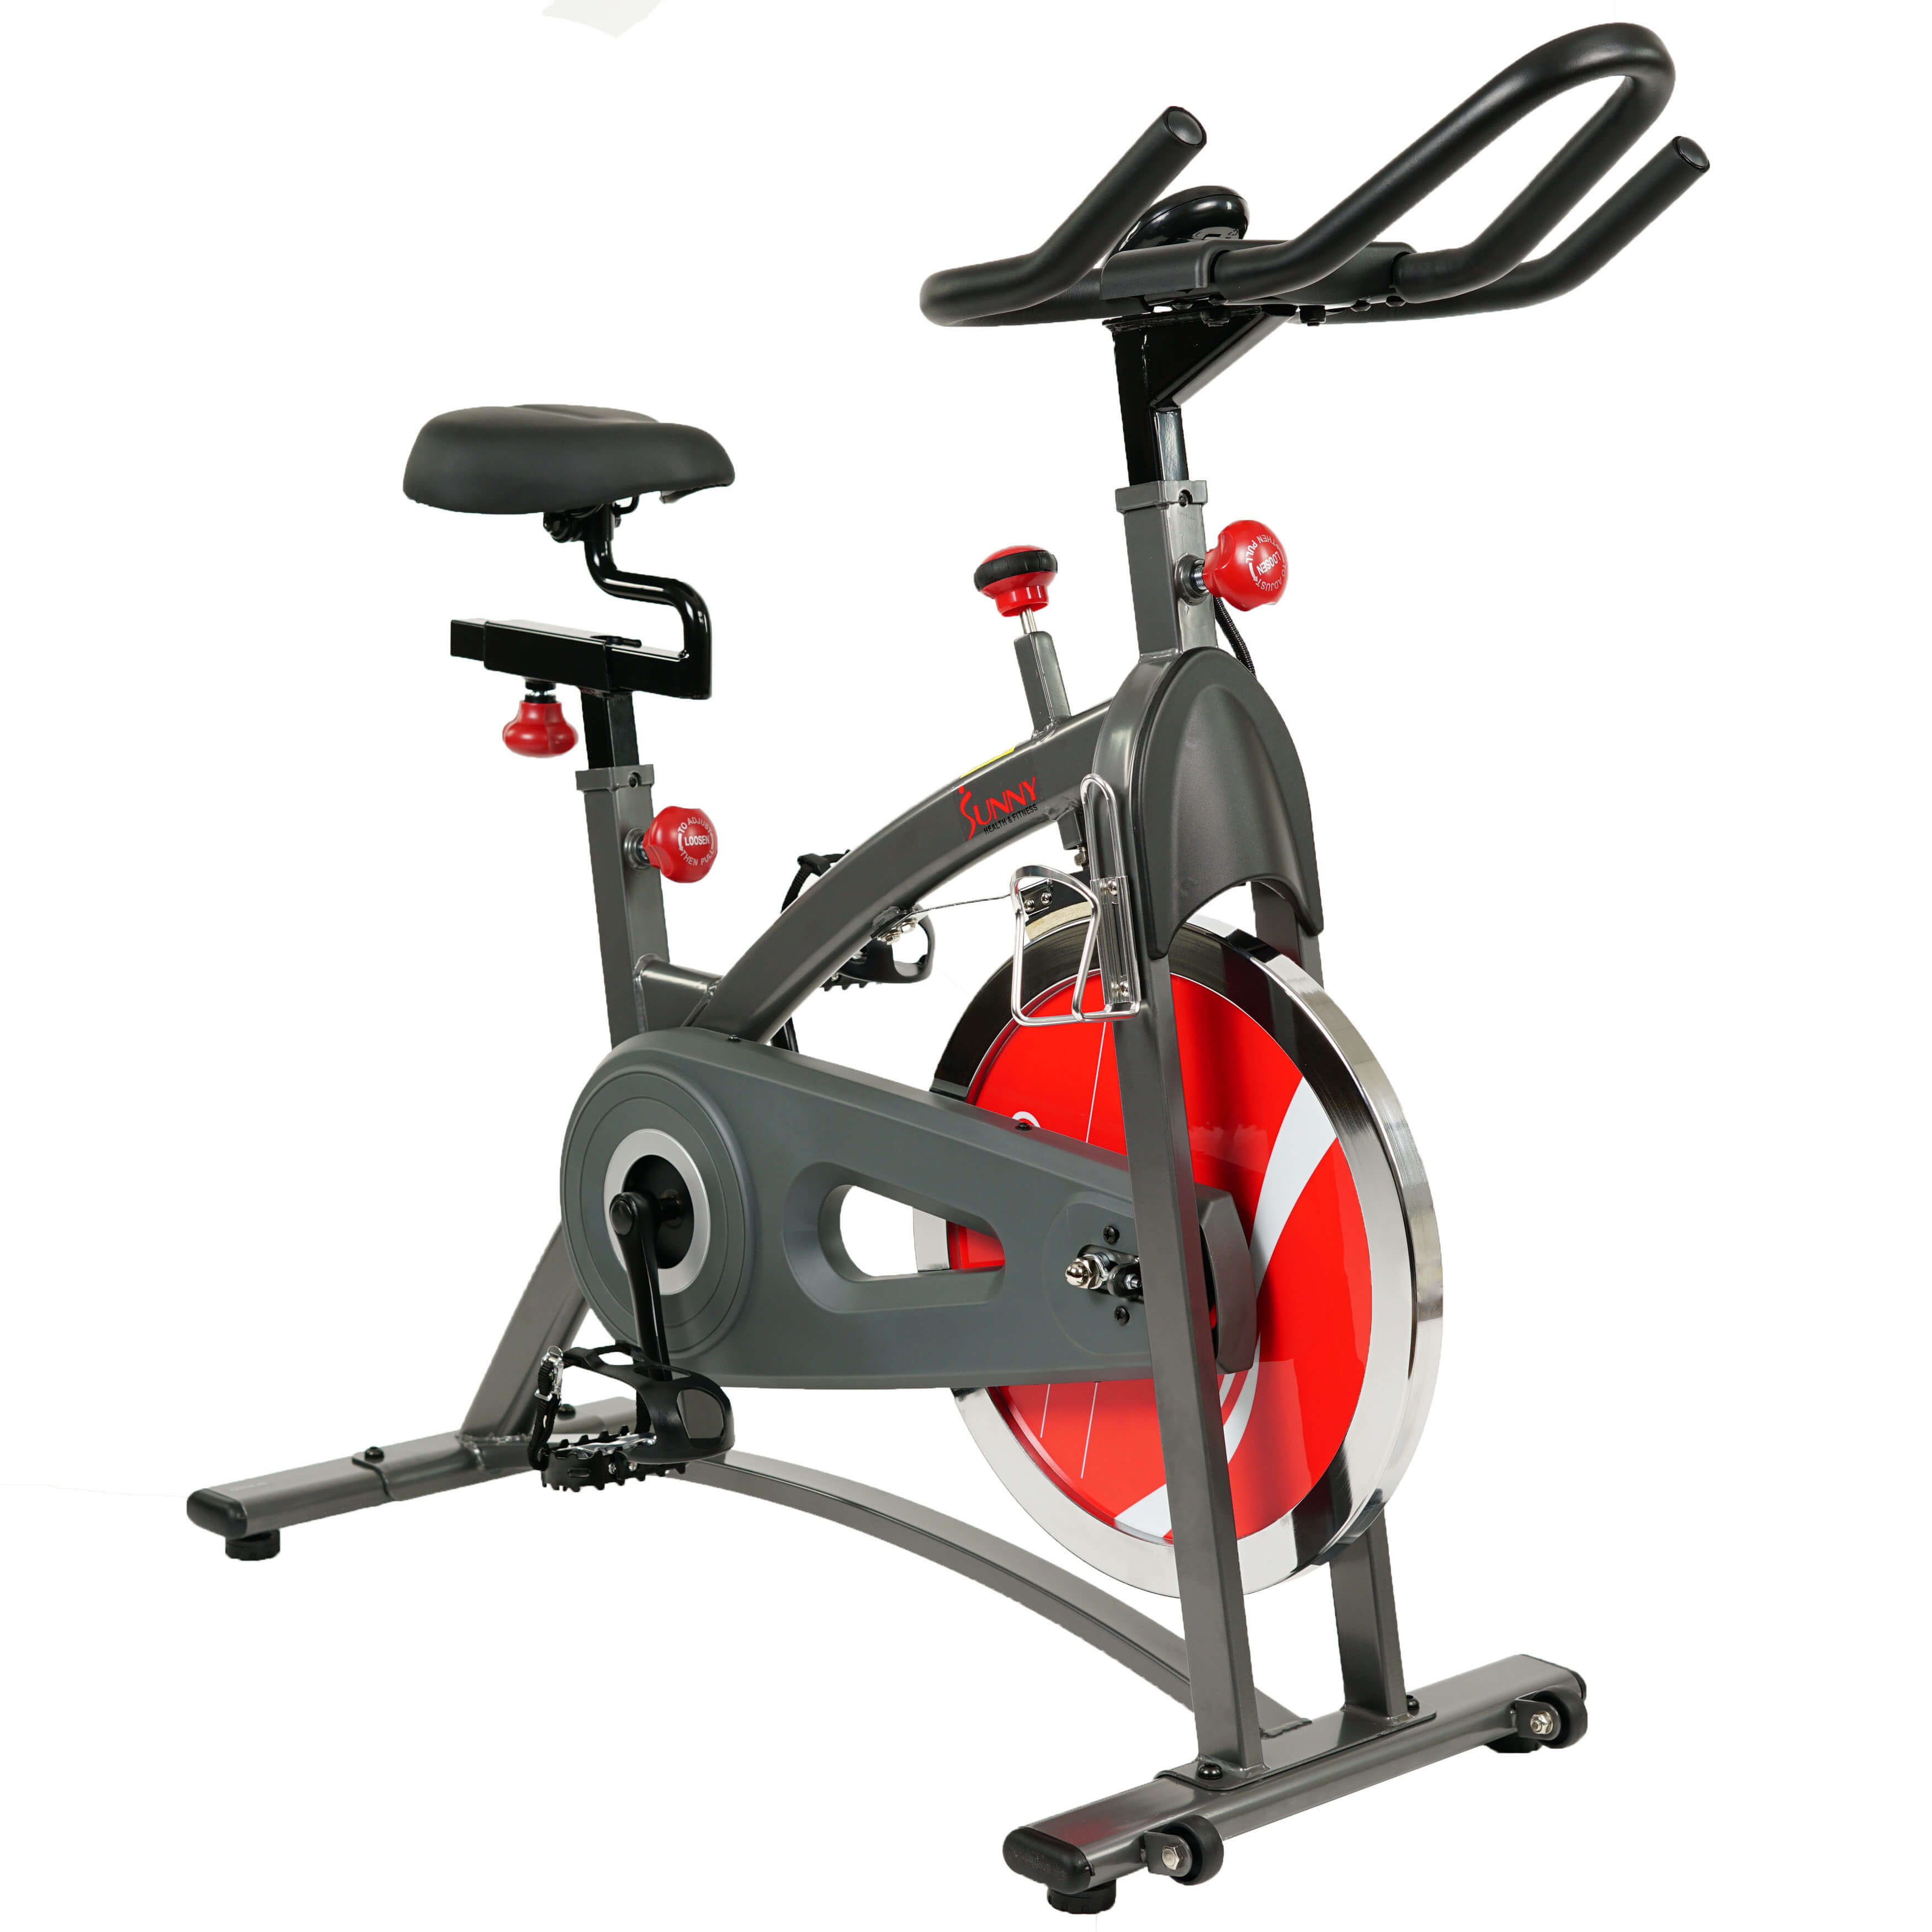 Sports & Outdoors Sunny Health & Fitness SF-B1423 Belt Drive Indoor Stuido Cycle Exercise Bike w/LCD Monitor